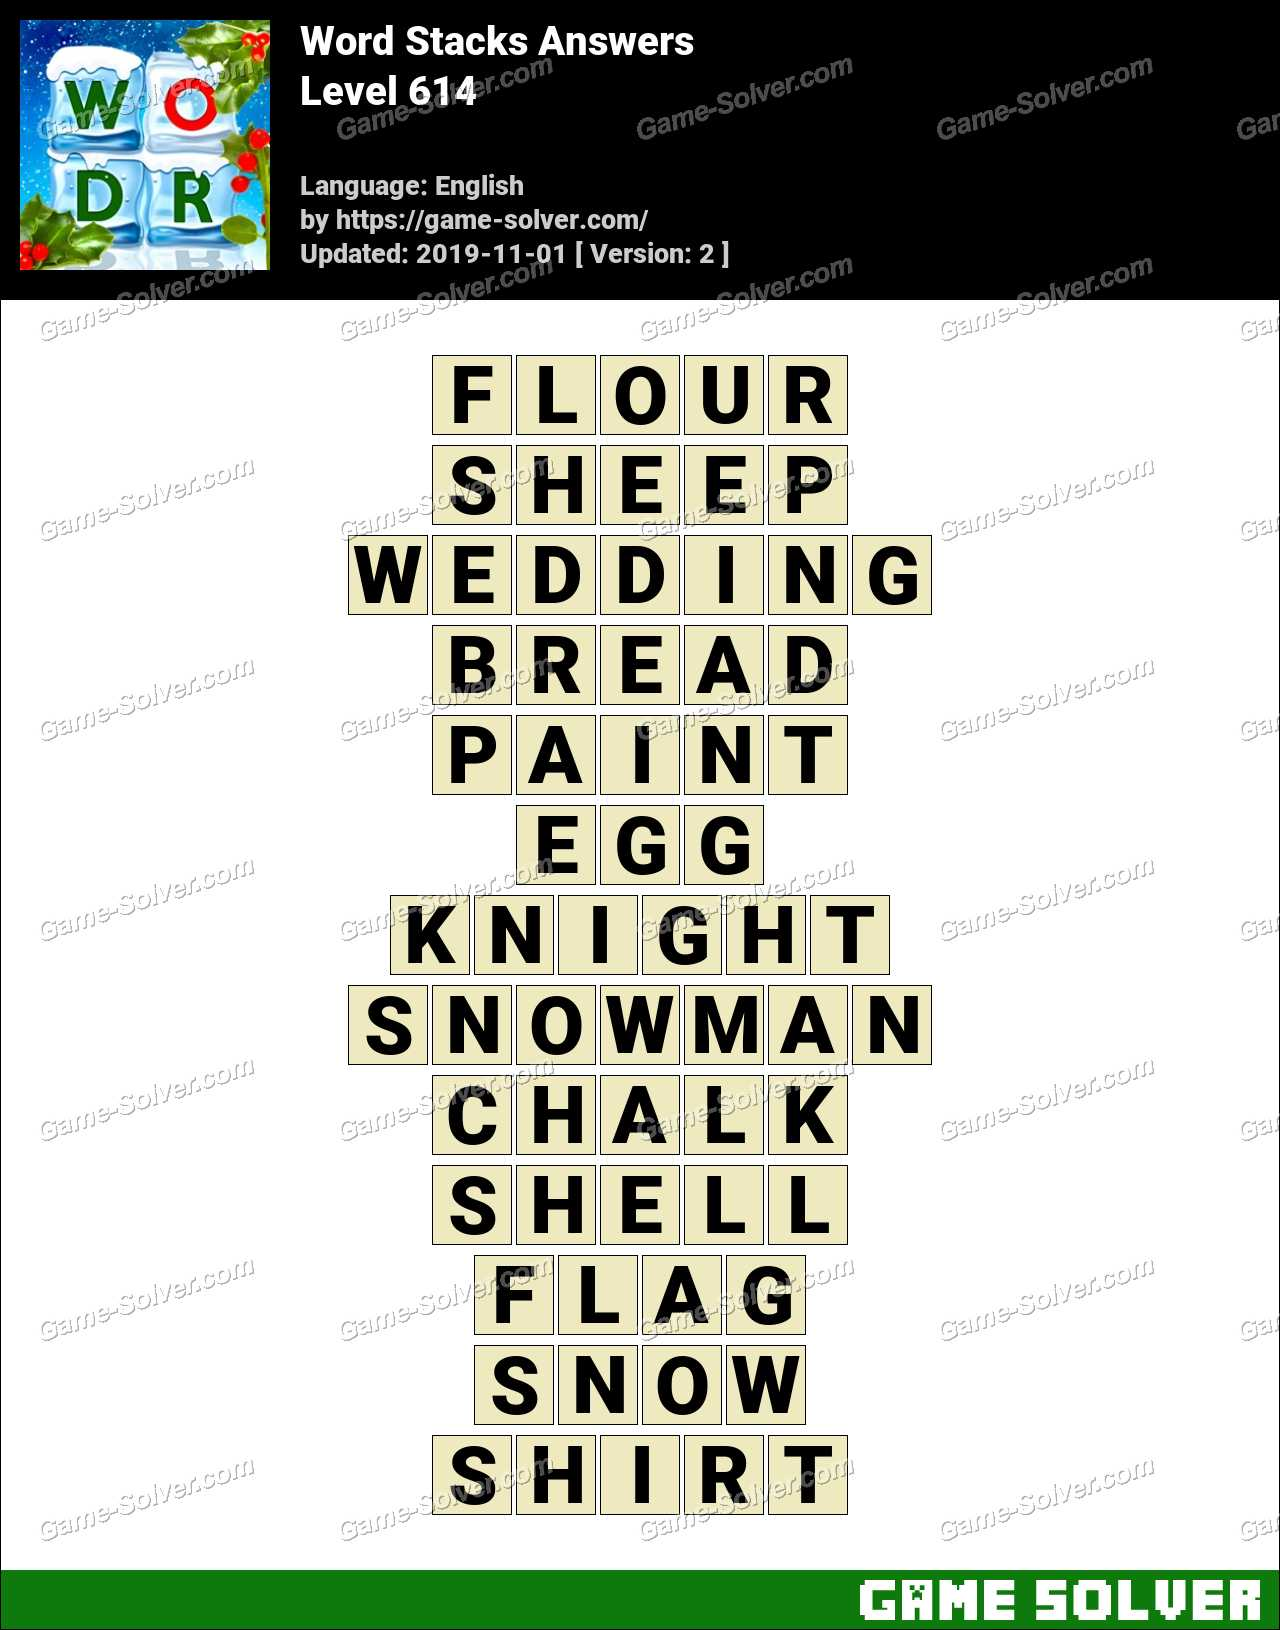 Word Stacks Level 614 Answers